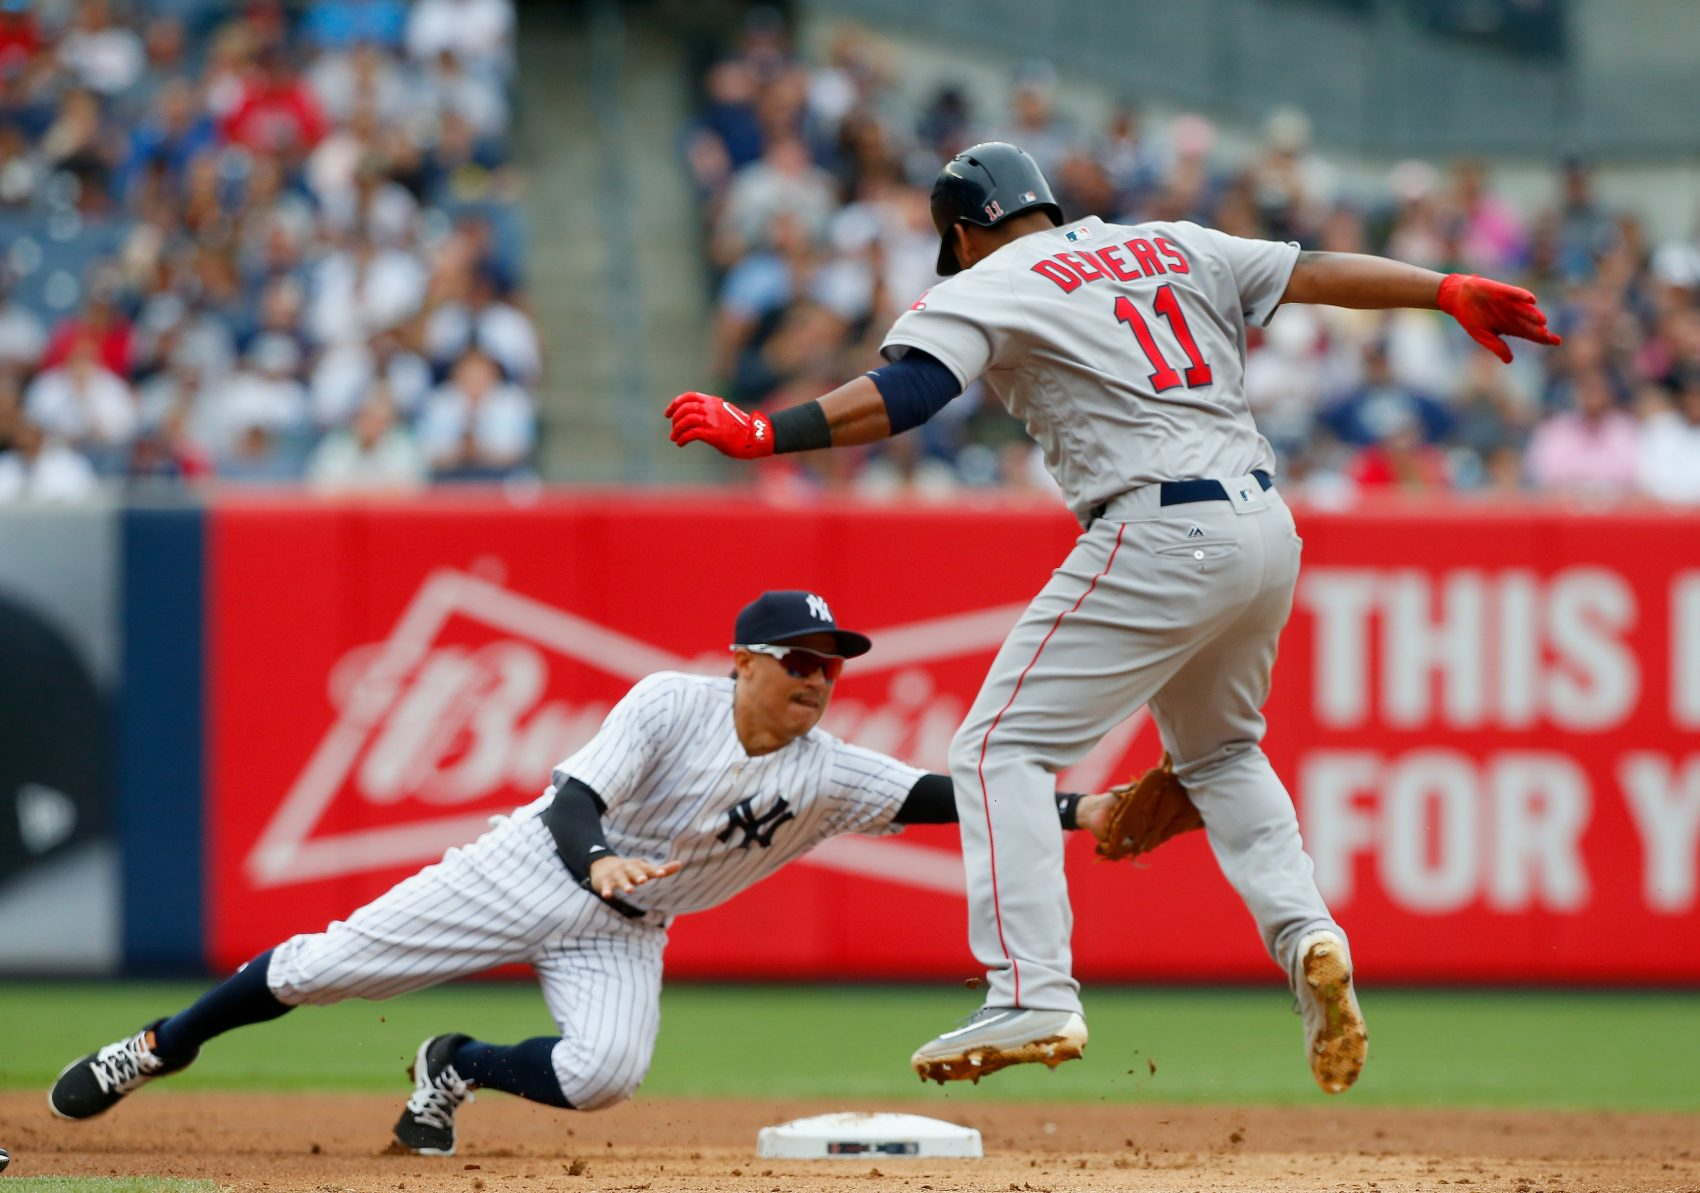 Yankees Beat Red Sox 6-2 In Game 2 Of Playoff Series